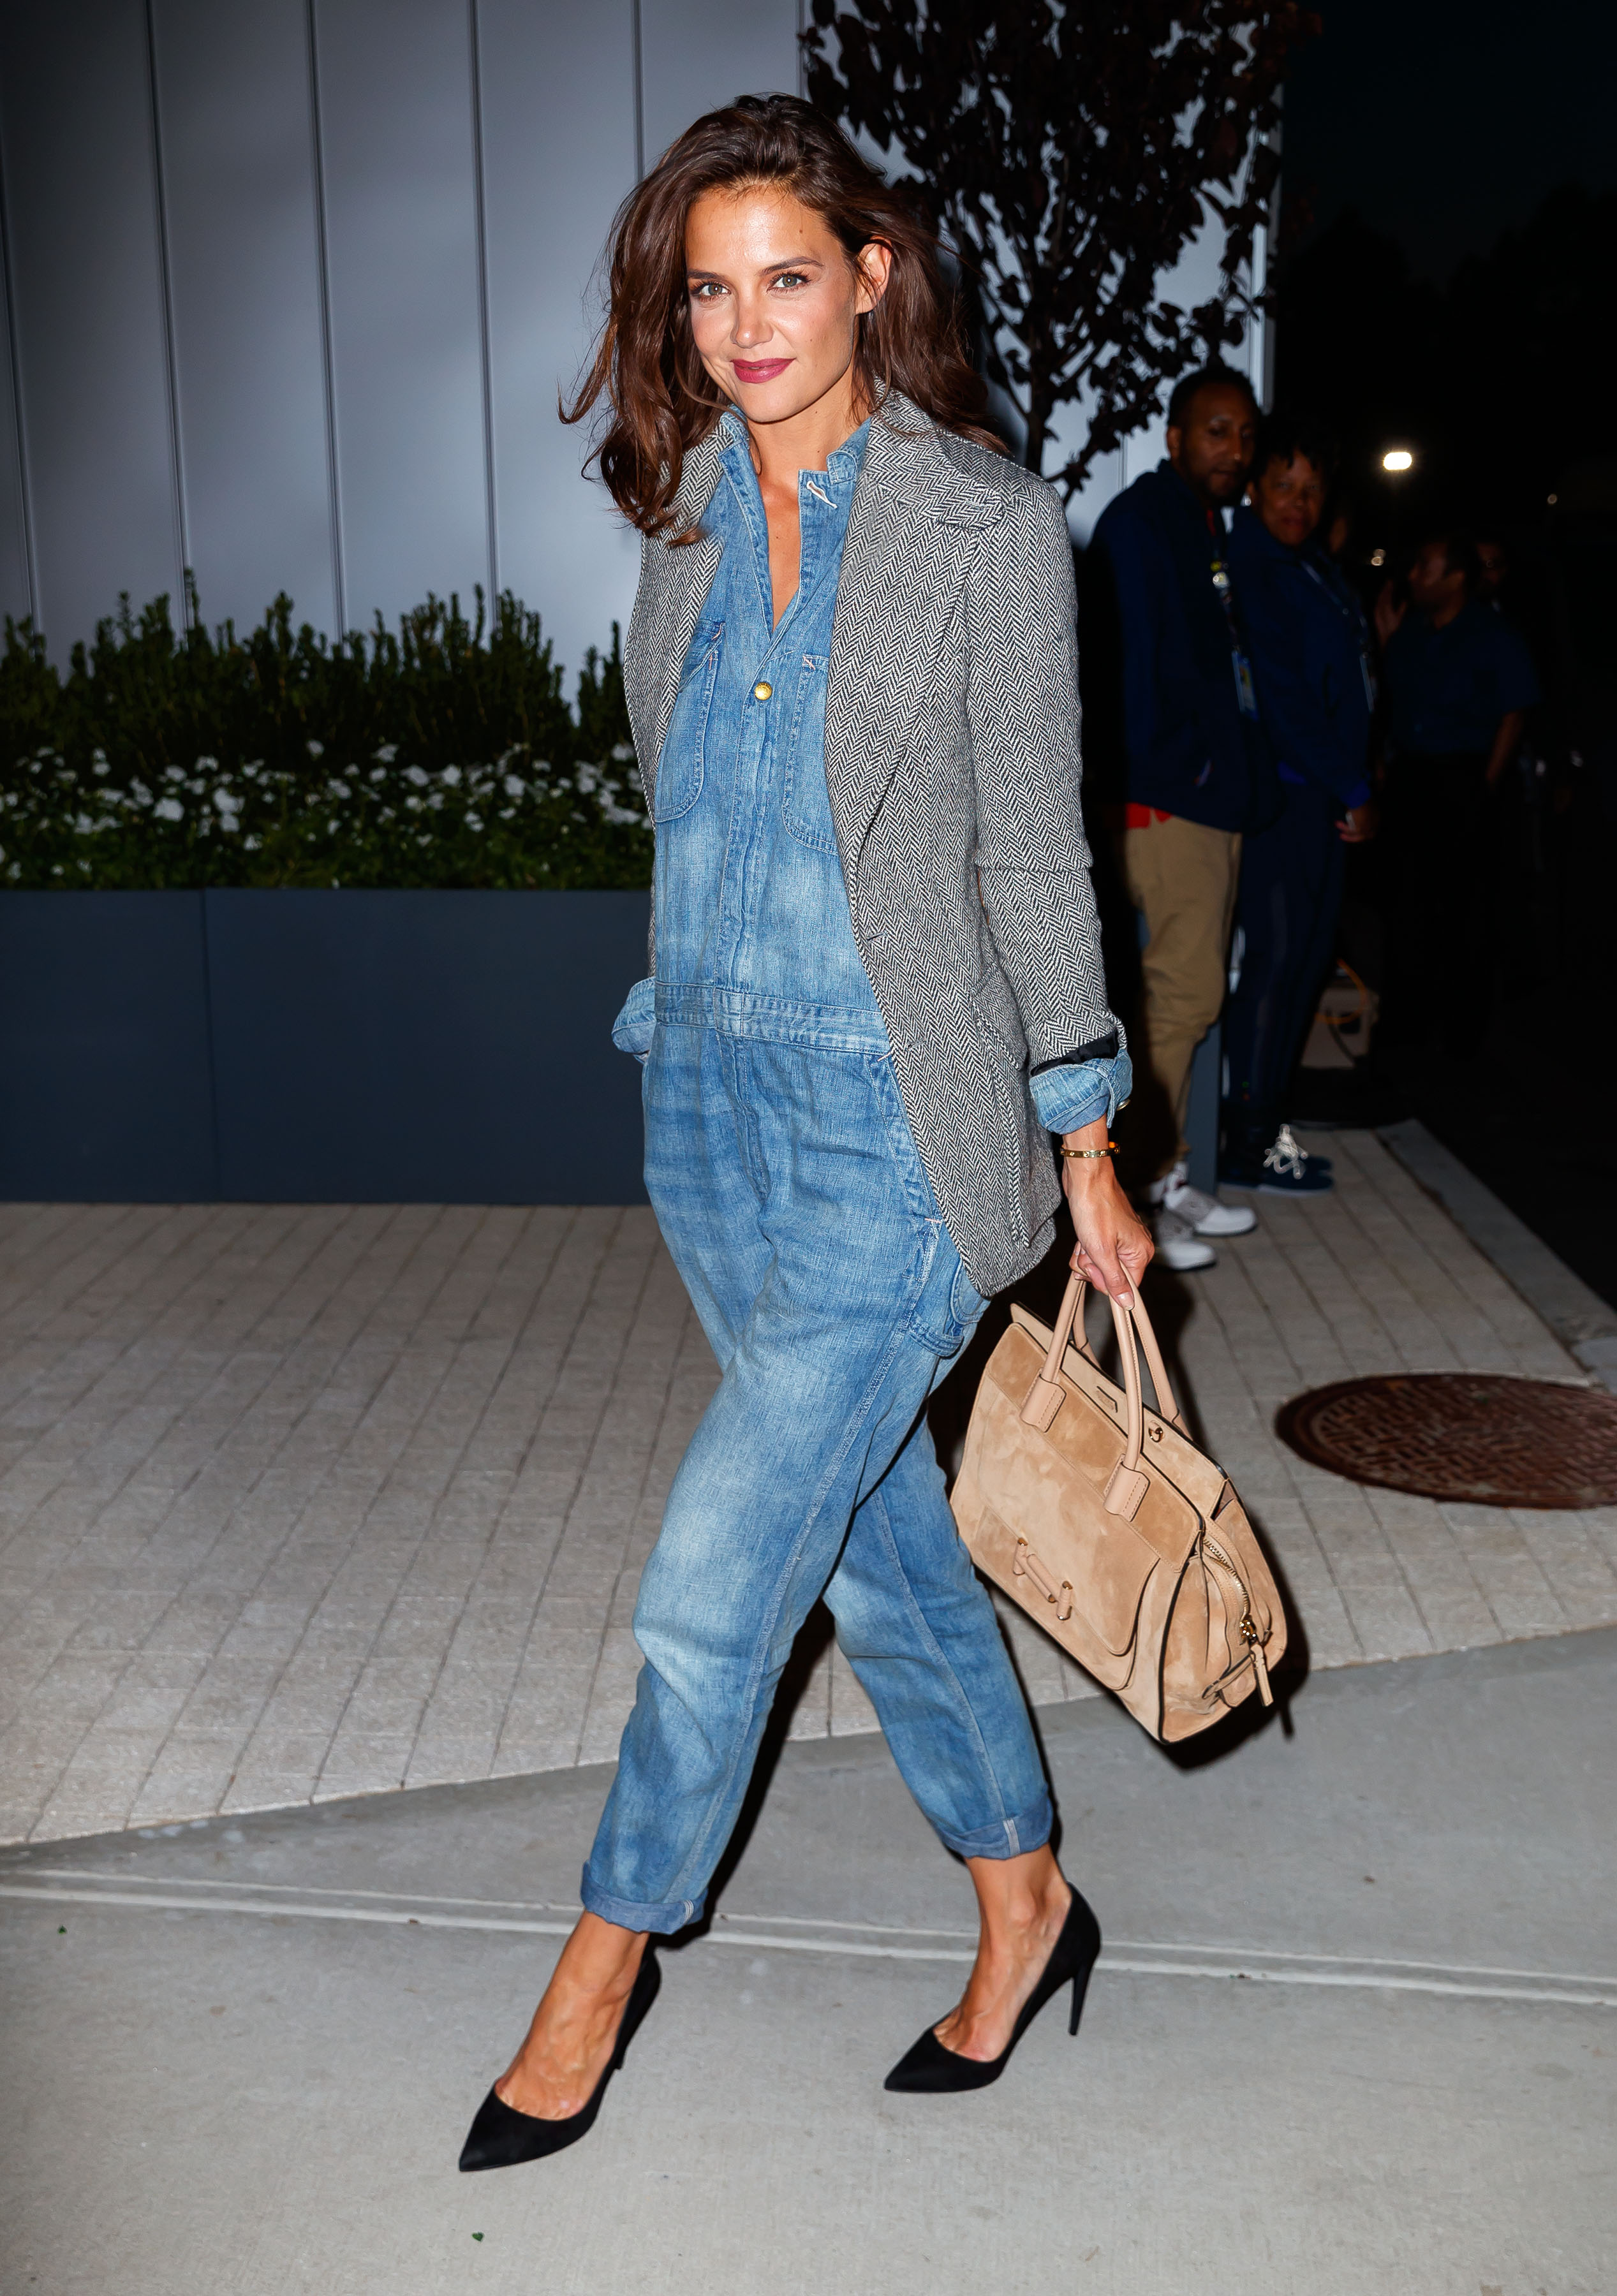 Katie Holmes arrives at Arthur Ashe Stadium in Flushing, NY. <P> Pictured: Katie Holmes <B>Ref: SPL1571711  080917  </B><BR/> Picture by: XactpiX/Splash<BR/> </P><P> <B>Splash News and Pictures</B><BR/> Los Angeles:310-821-2666<BR/> New York:212-619-2666<BR/> London:870-934-2666<BR/> <span id=